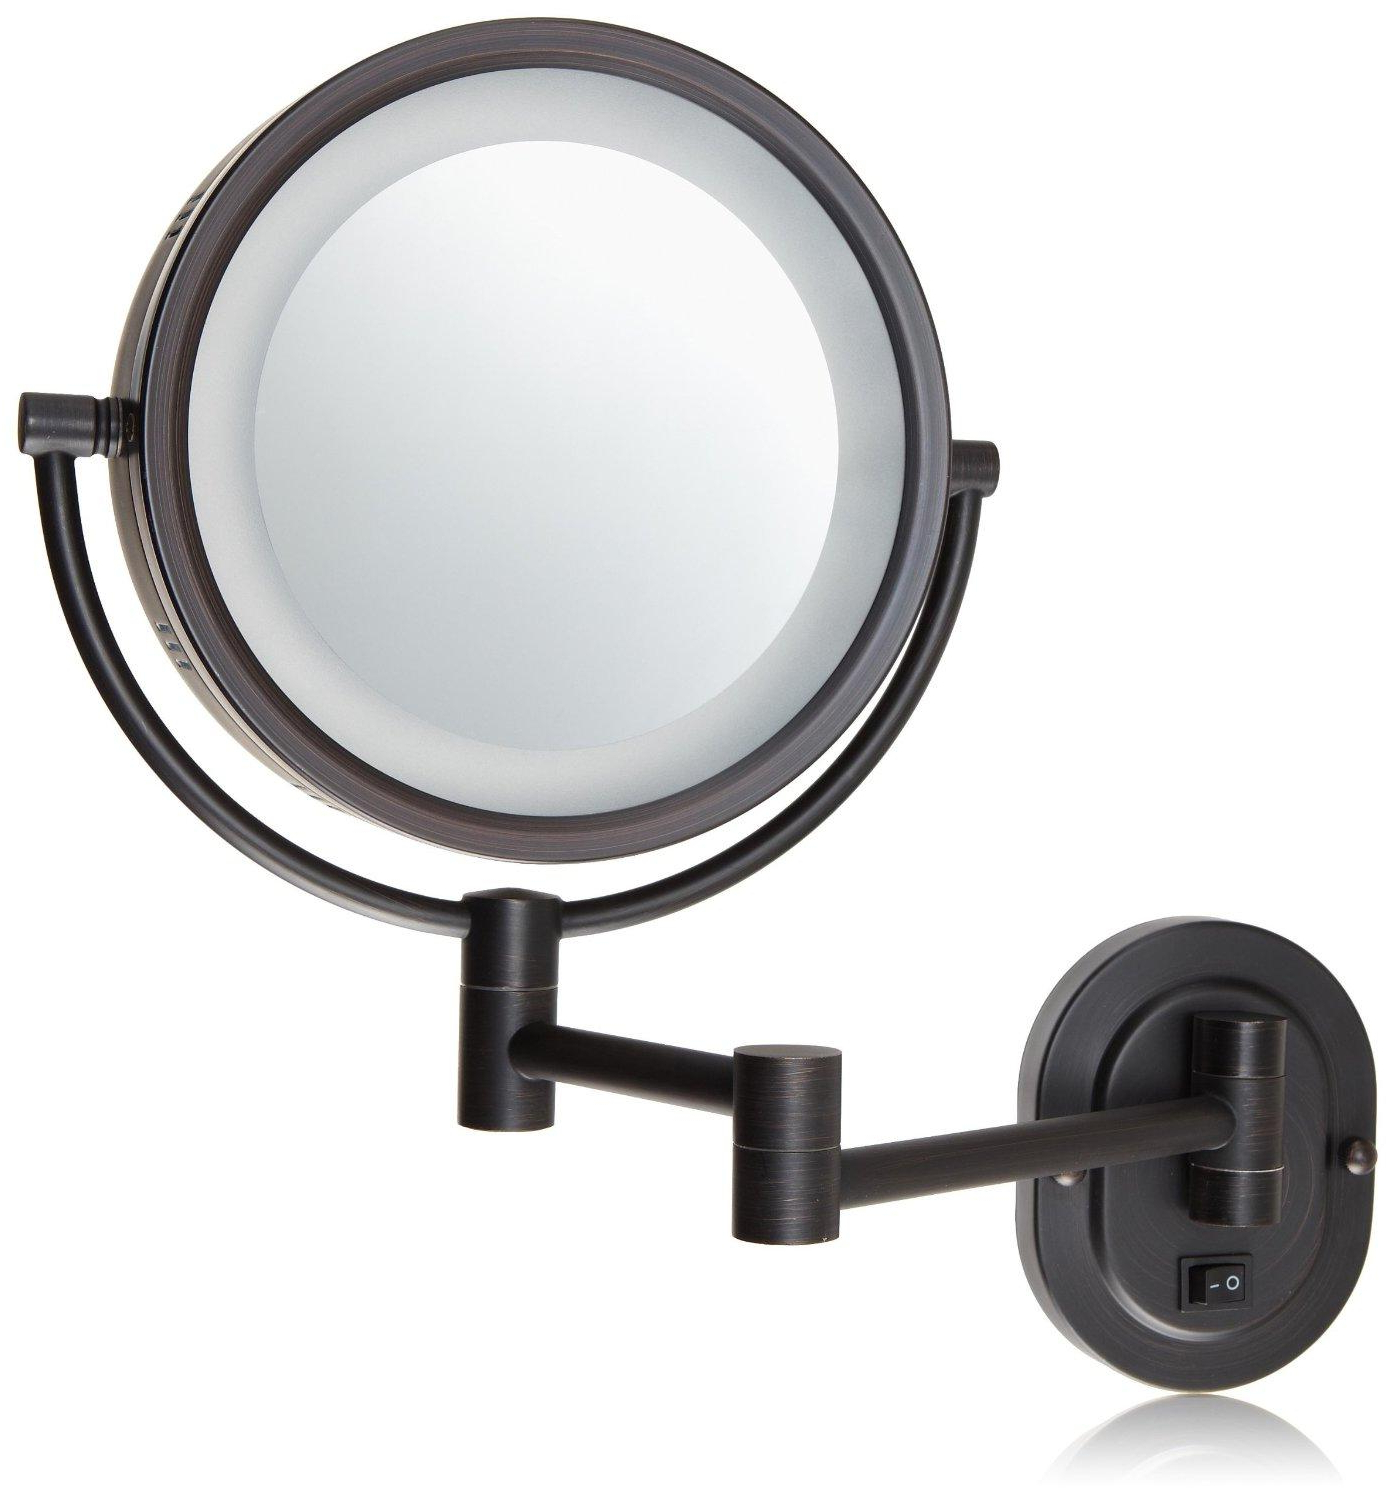 Magnifying Wall Mirrors For Bathroom With Regard To Current Jerdon Hl65bzd 8 Inch Lighted Direct Wire Wall Mount Makeup Mirror With 5x Magnification, Bronze Finish (View 11 of 20)